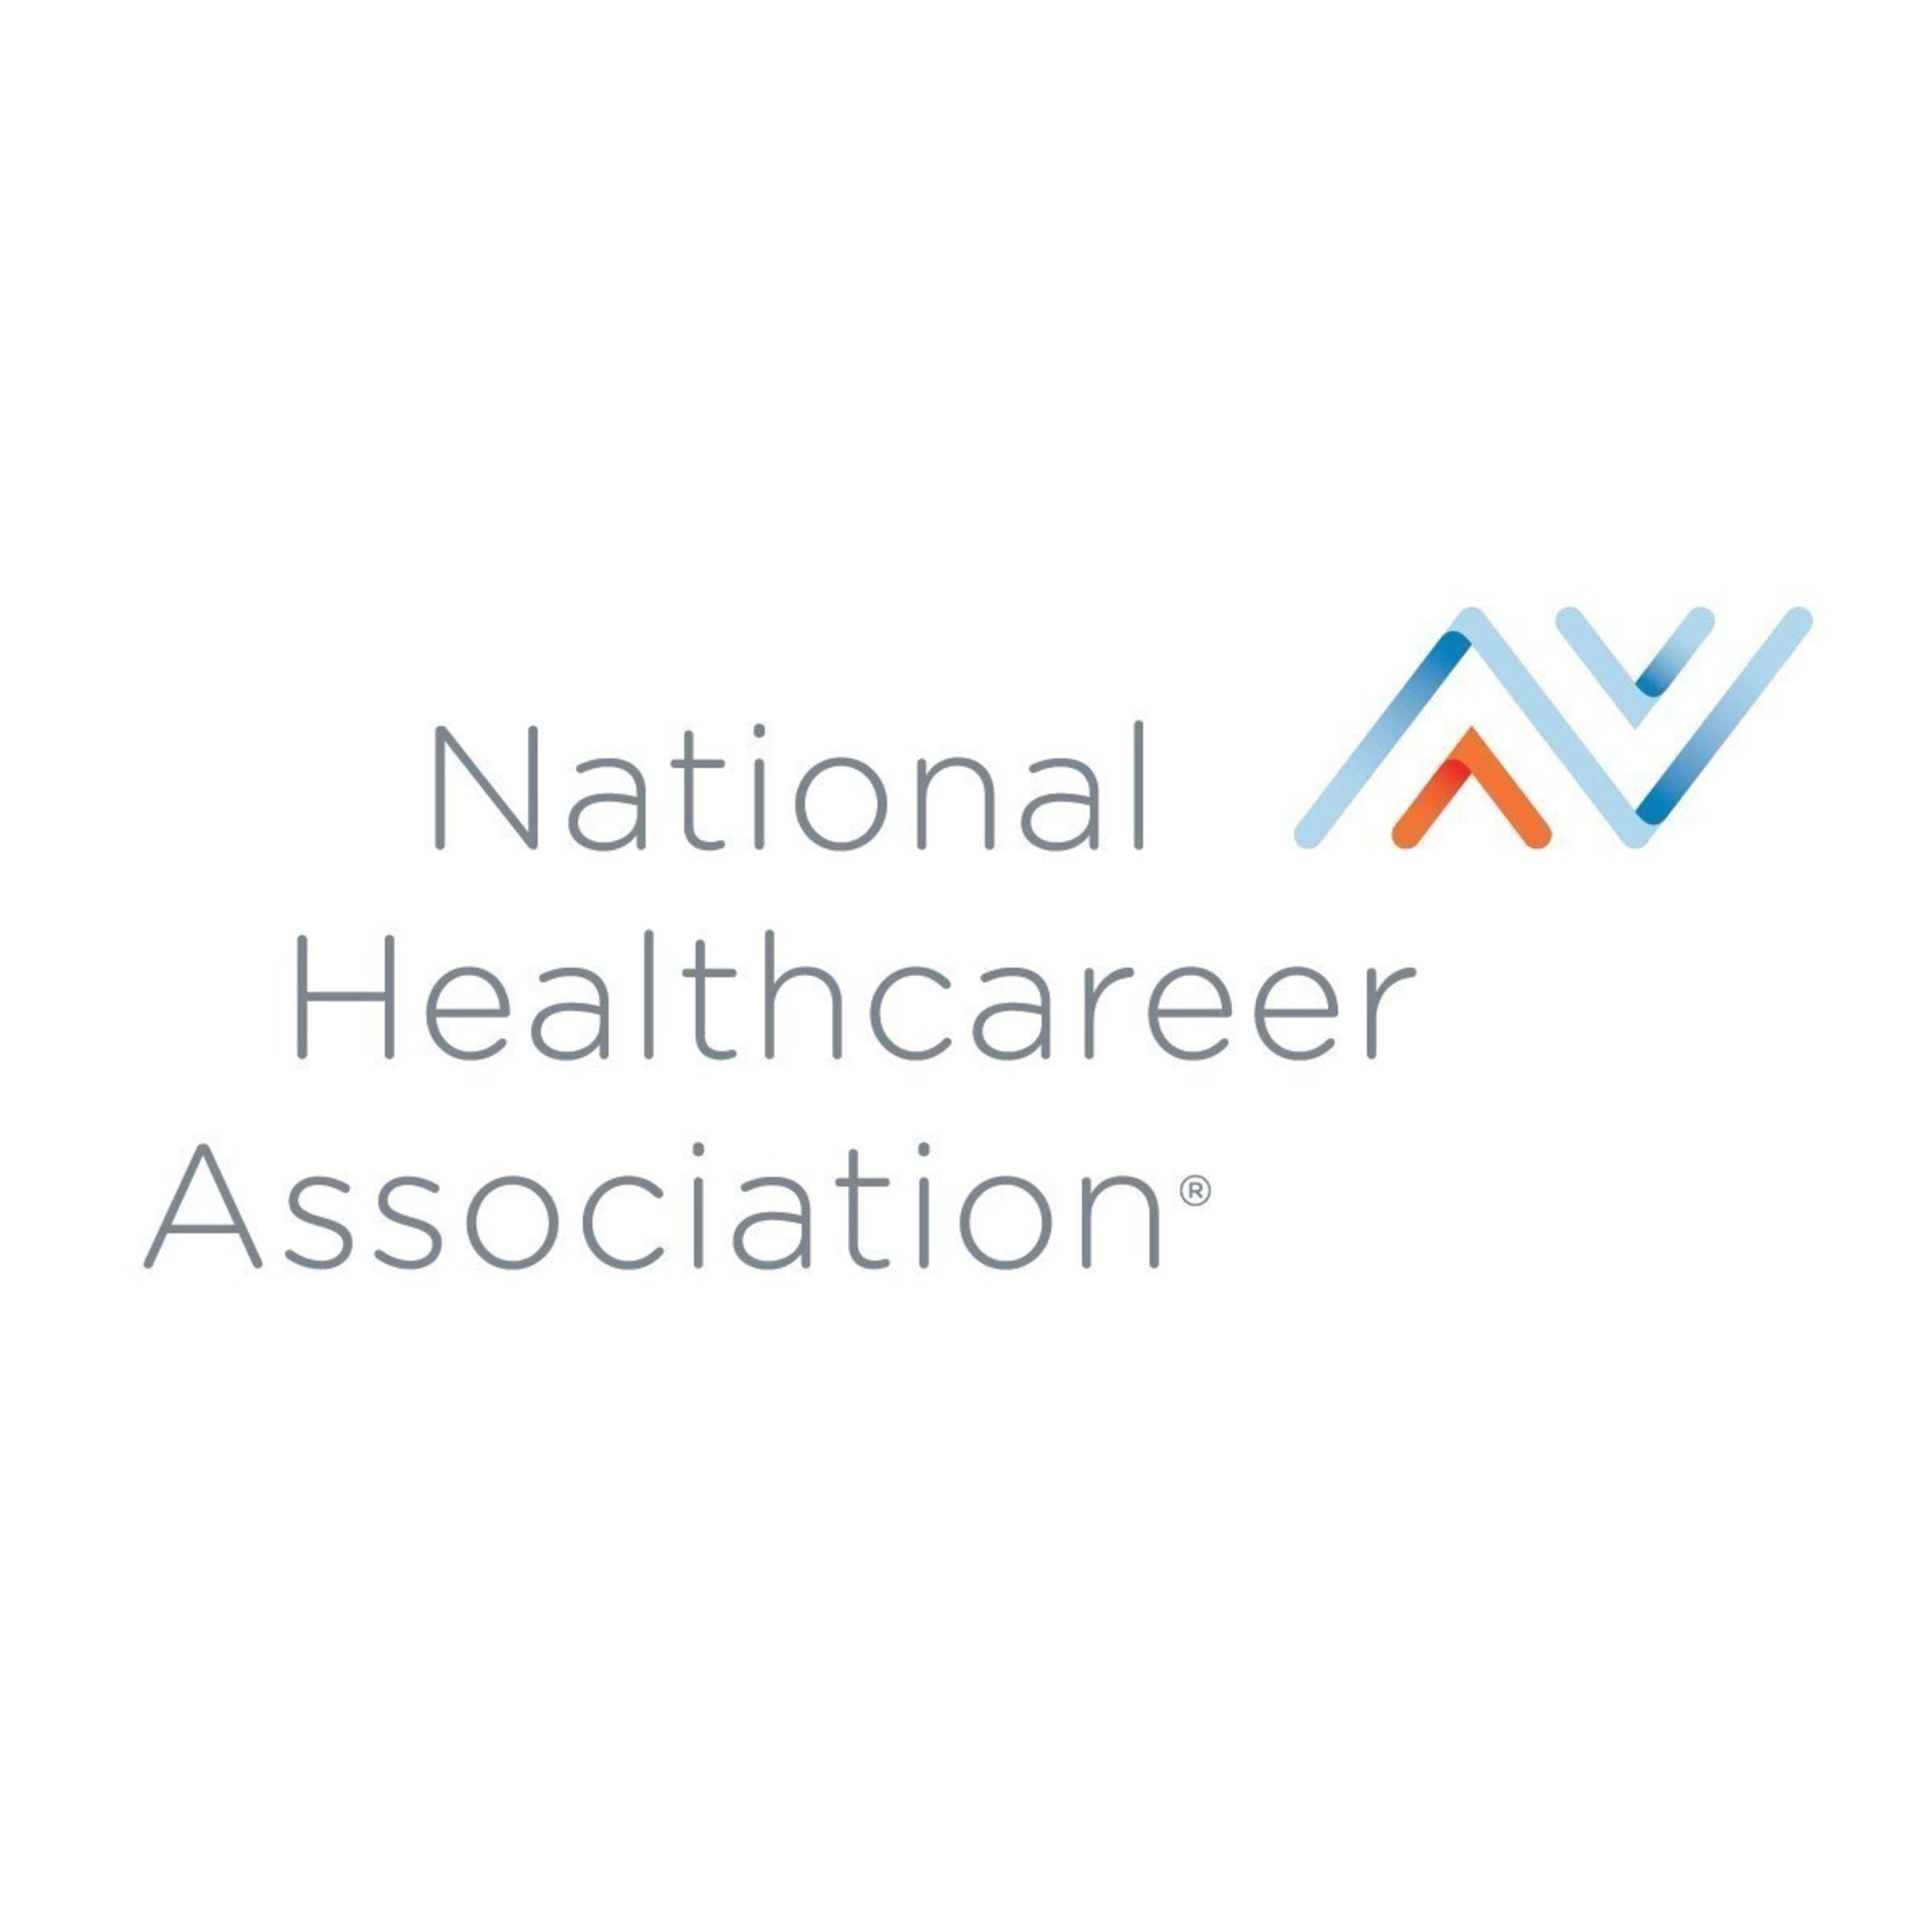 National Healthcareer Association Gains Arizona Approval For